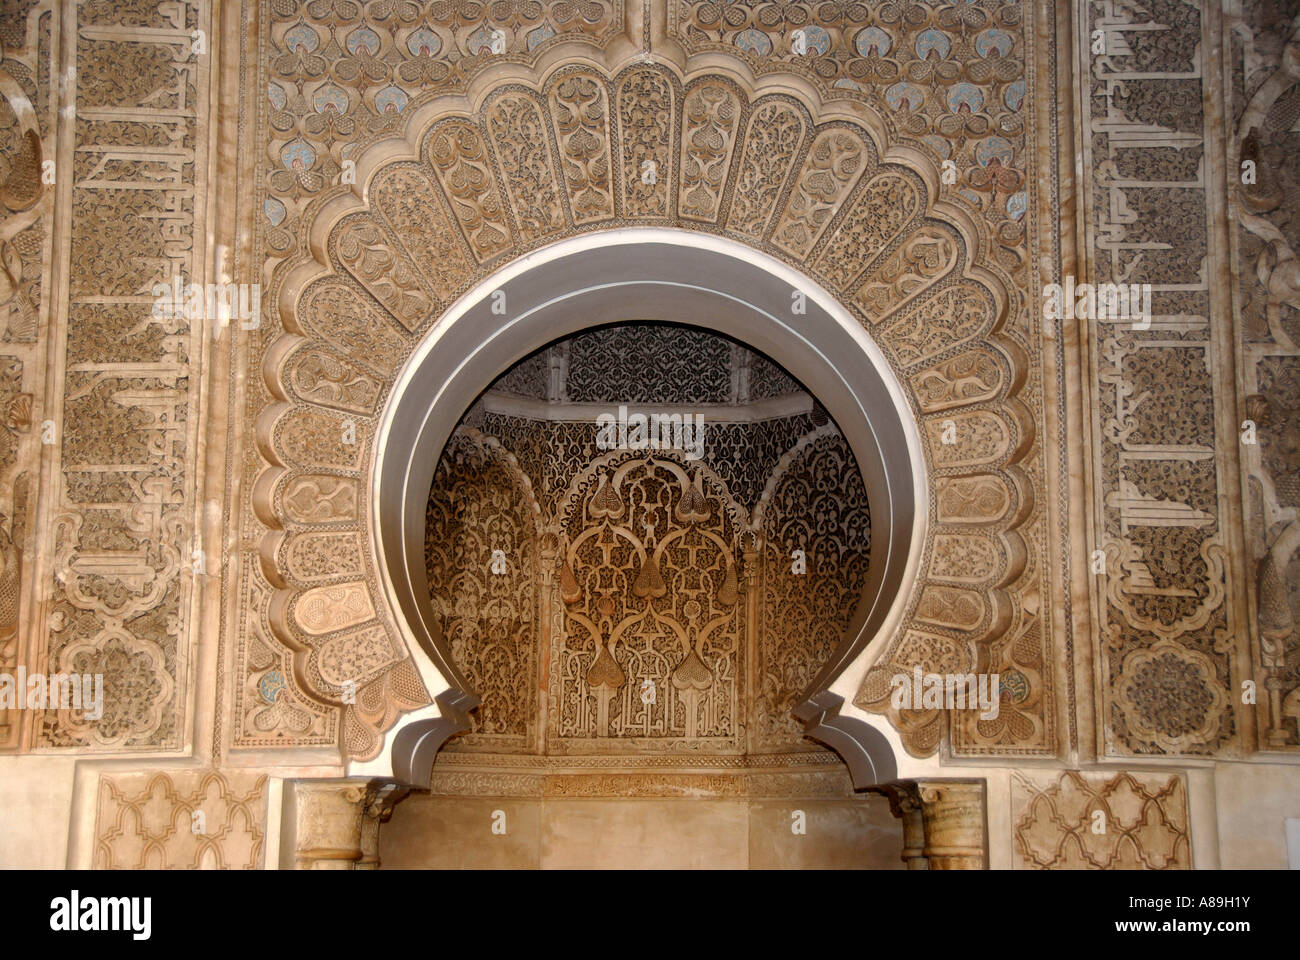 Oriental detail of with fine stucco richly decorated mihrab Medersa Ali Ben Youssef medina Marrakech Morocco Stock Photo